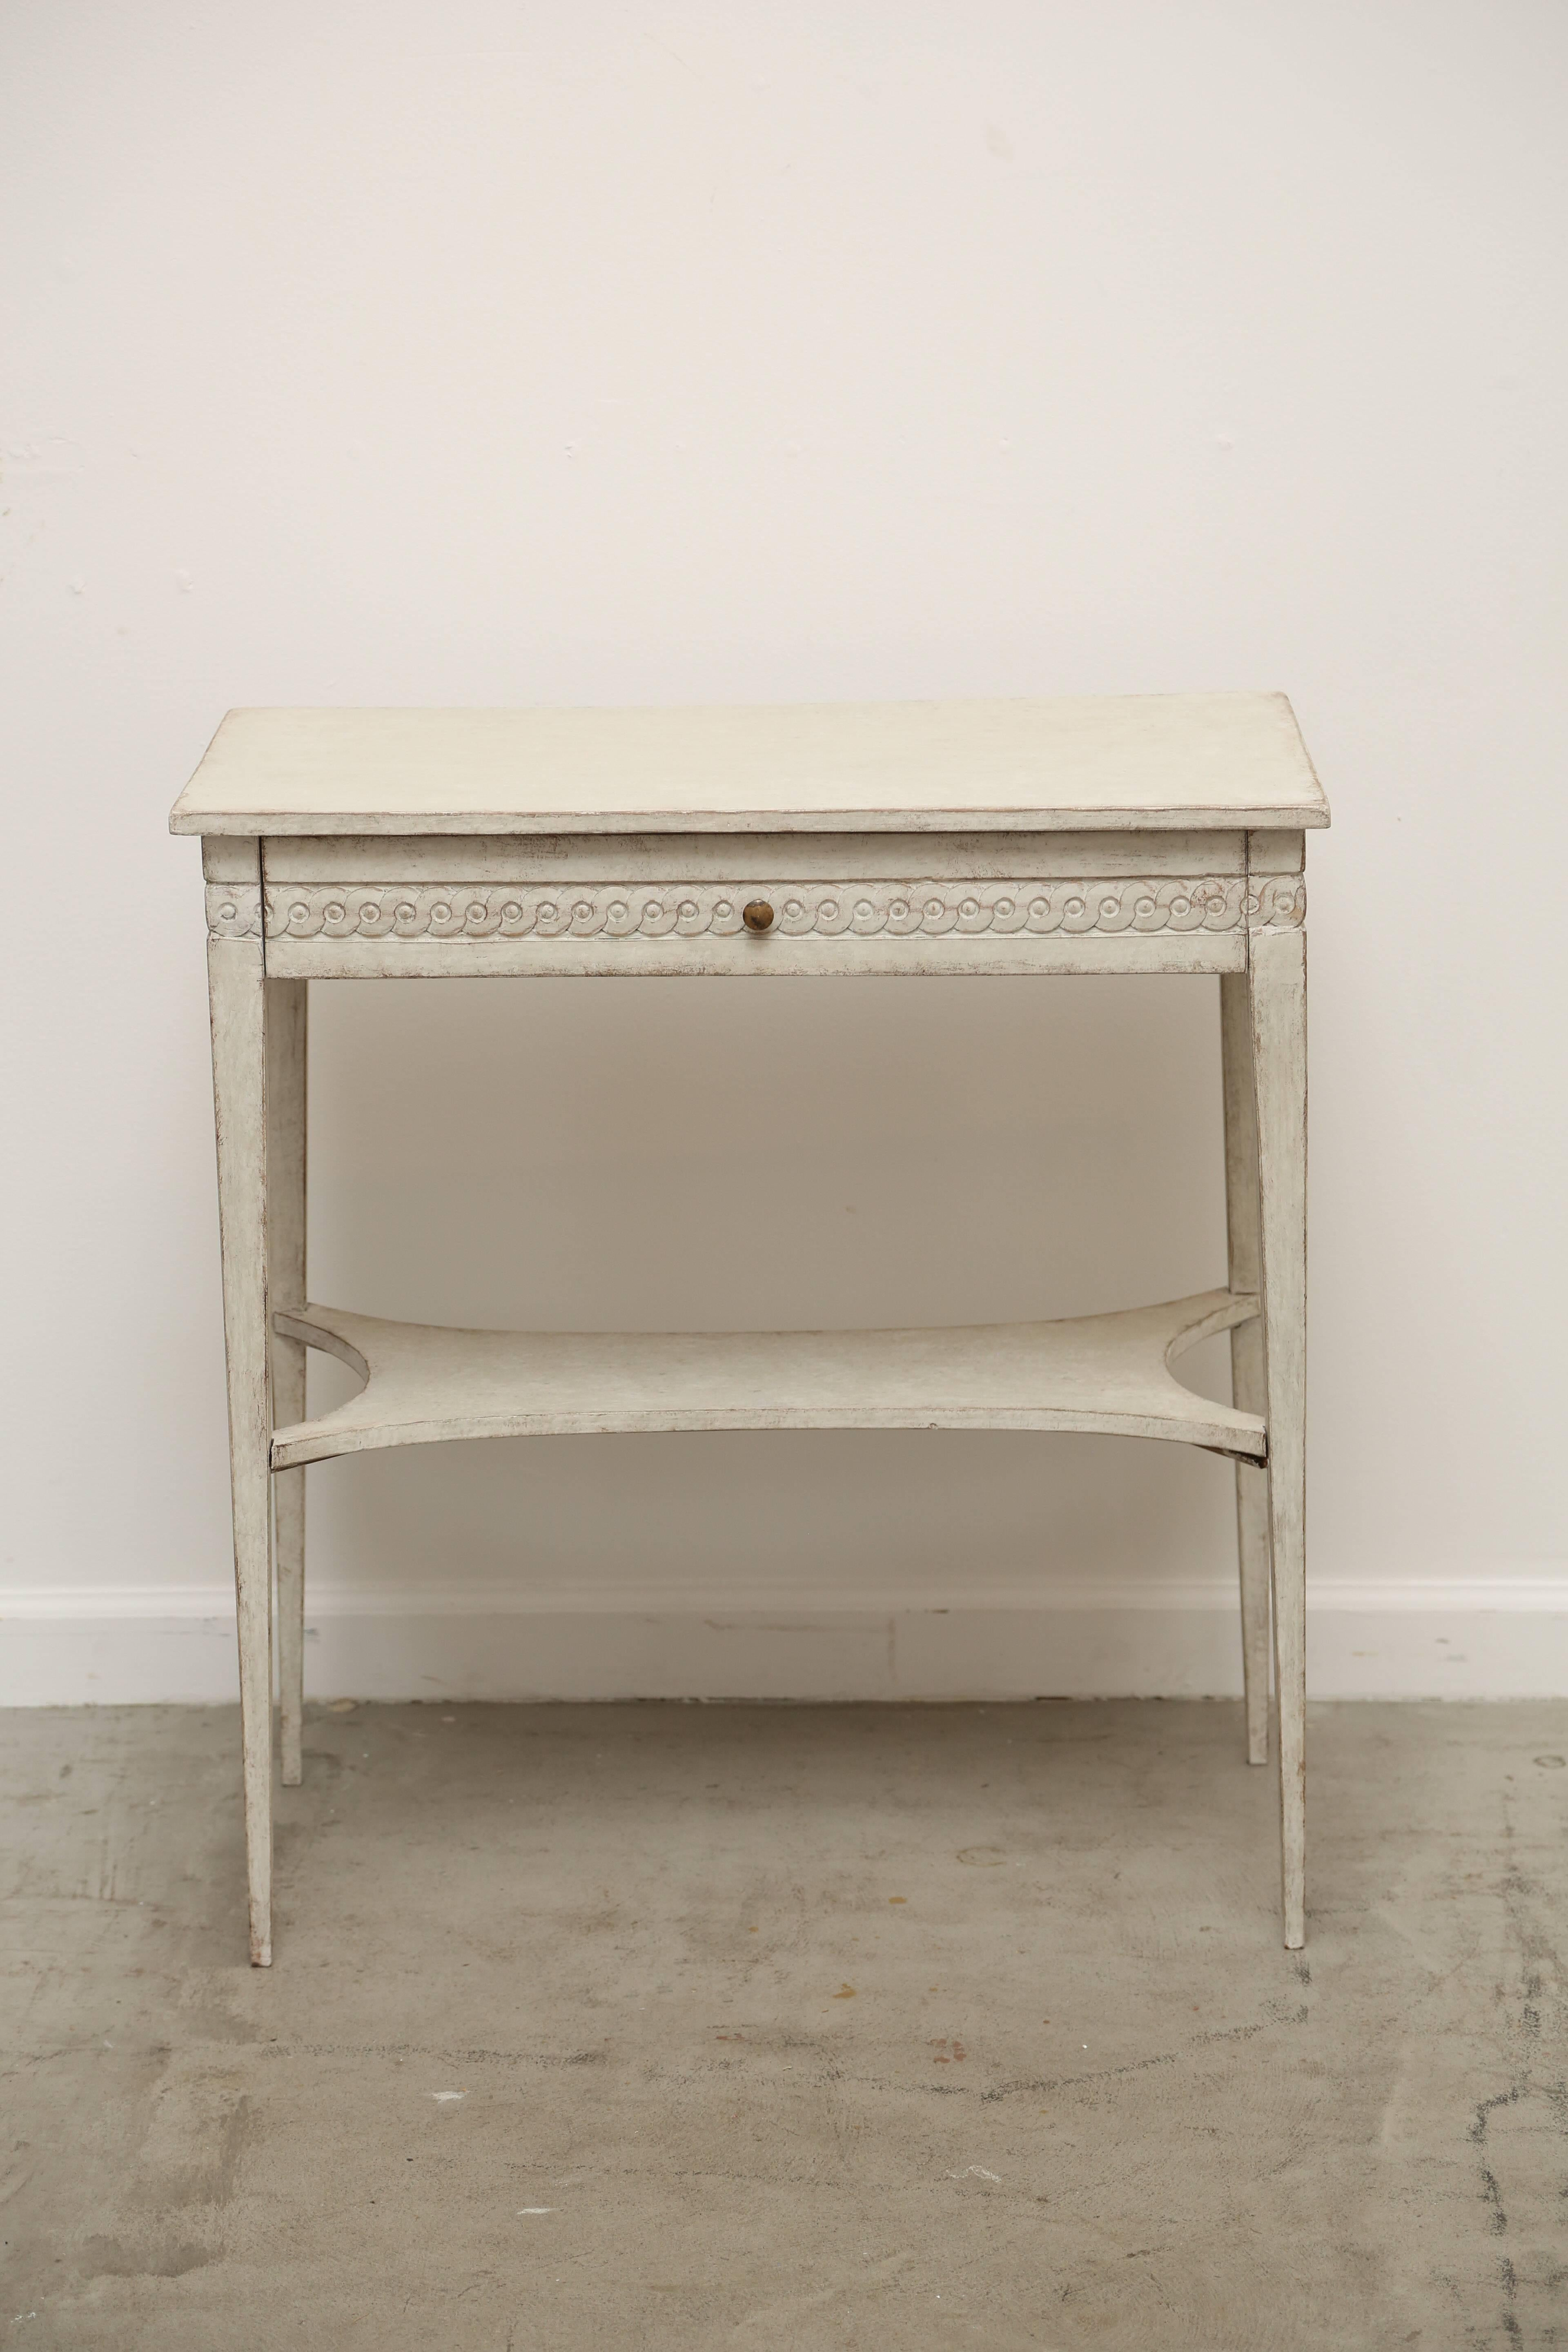 Antique Swedish Gustavian Style Painted Table With Drawer Mid 19th Century At 1stdibs